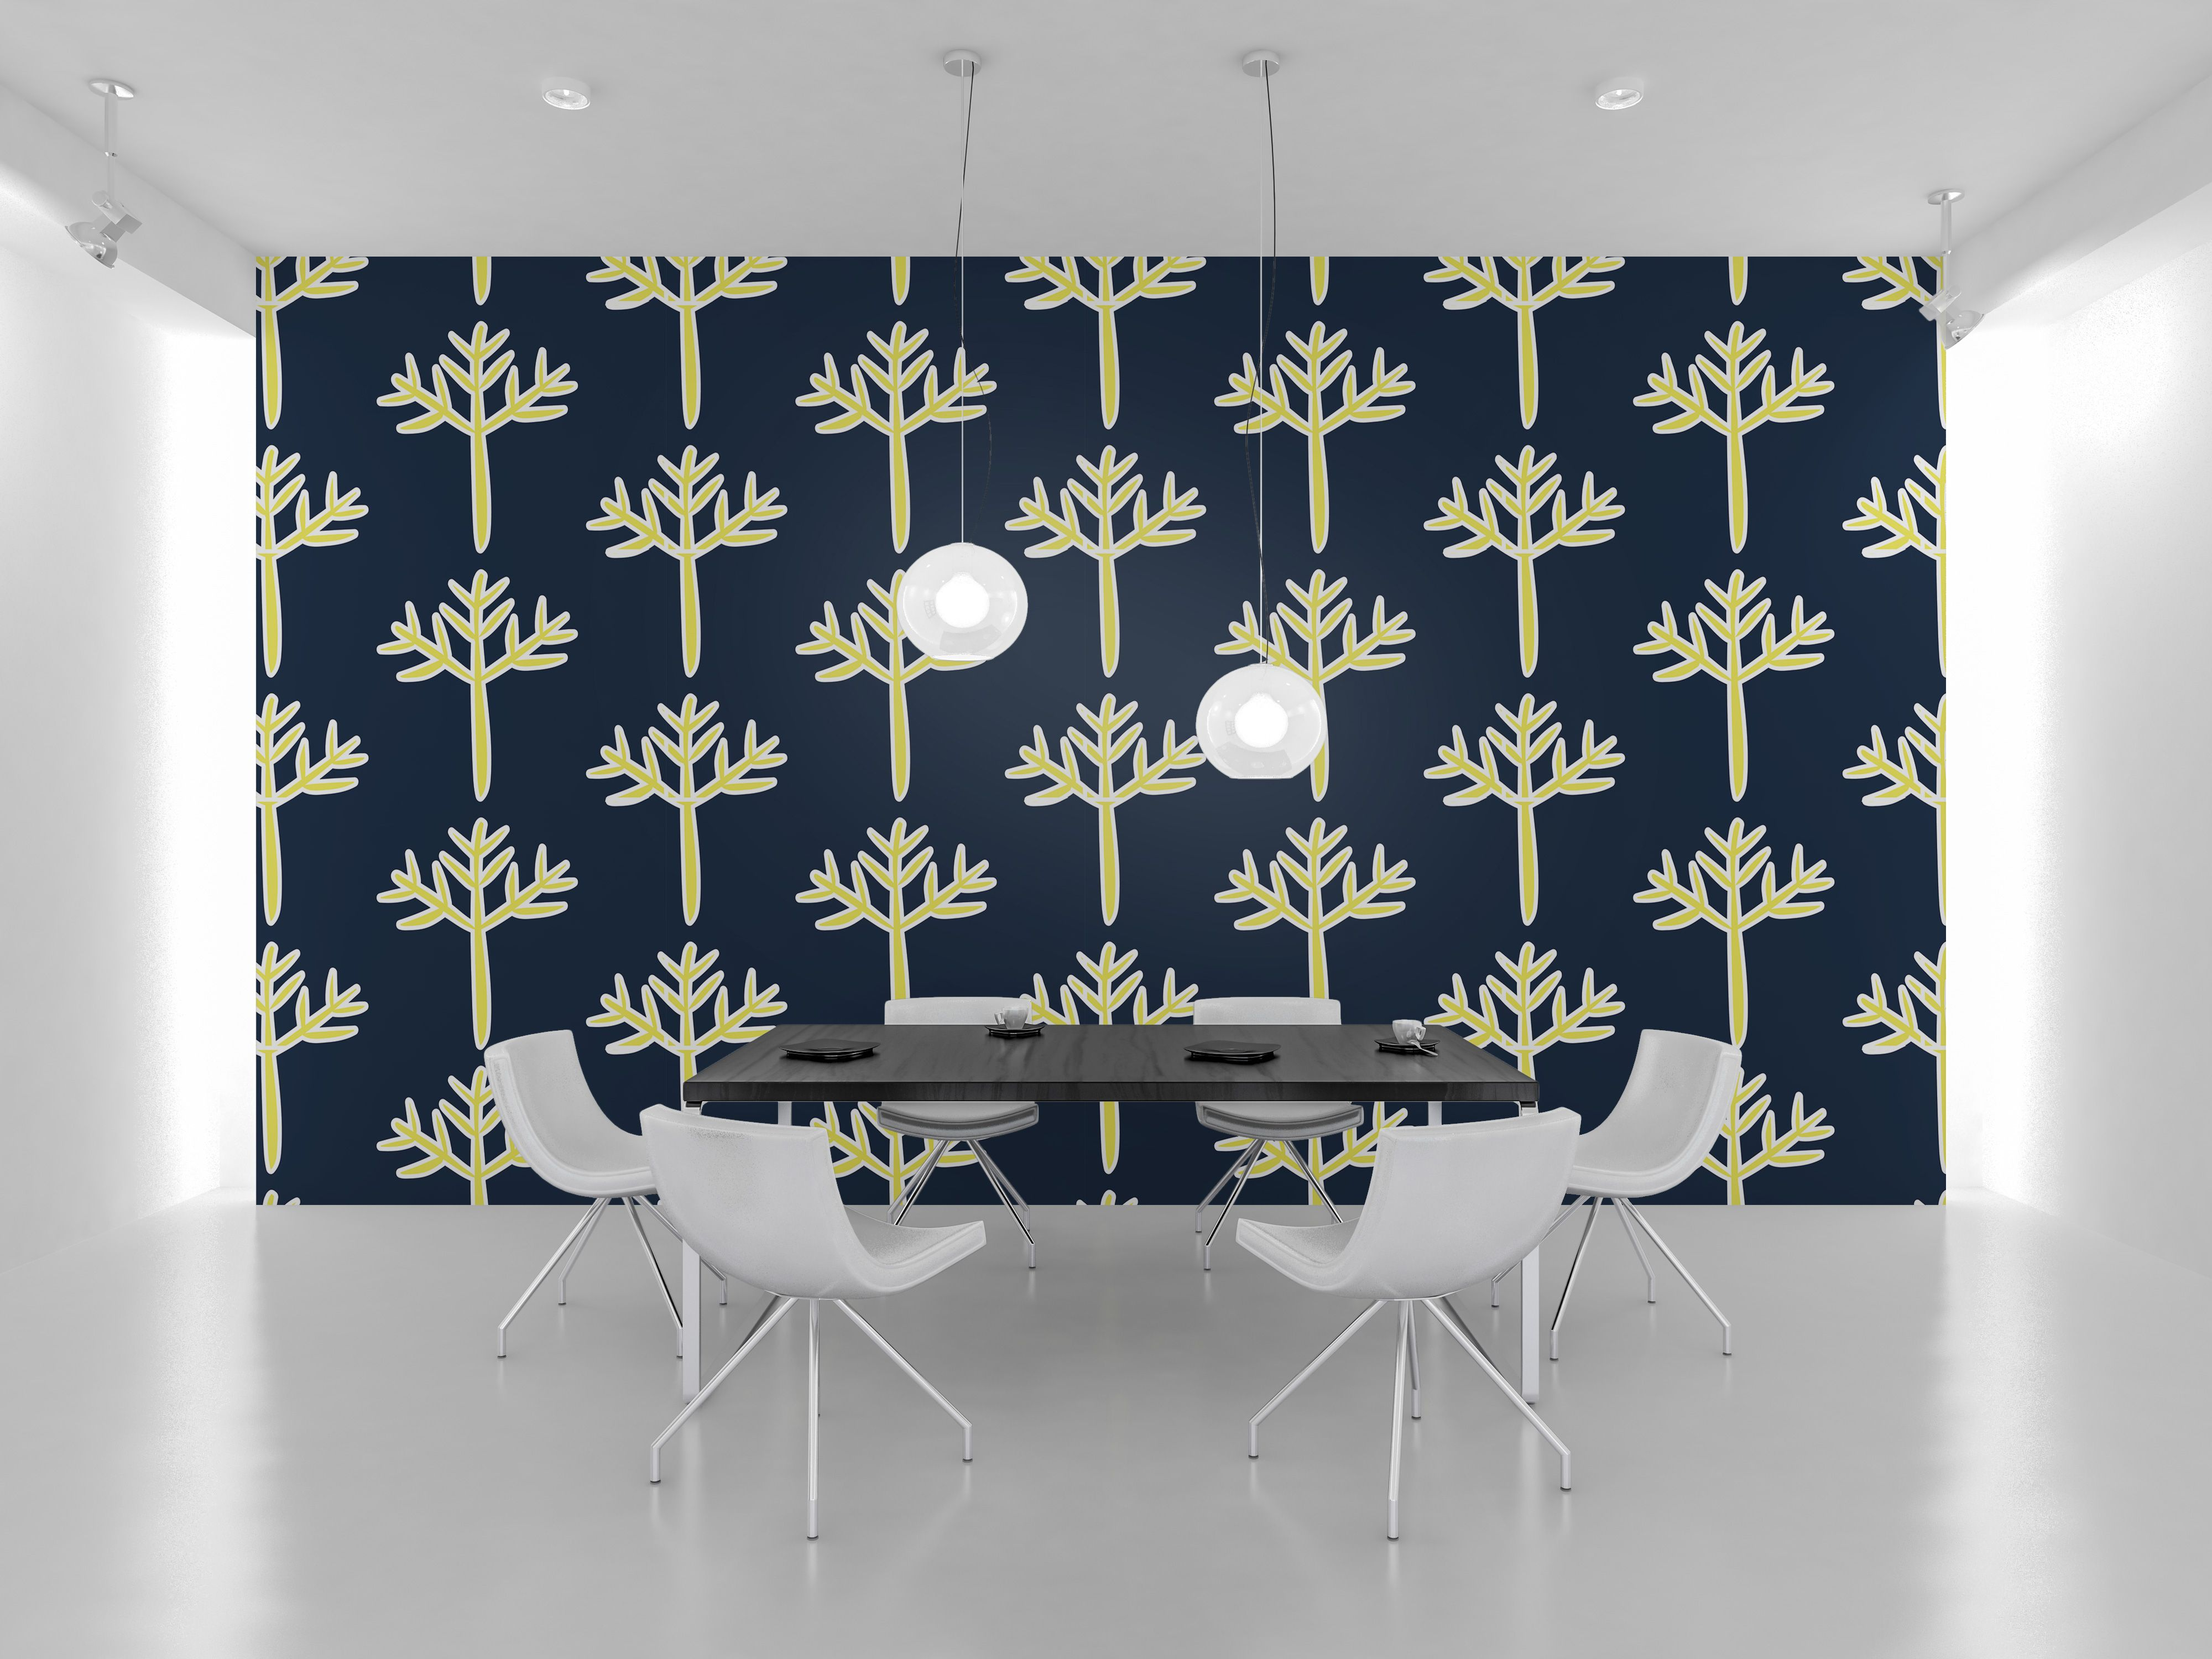 Golden tree pattern used as an wall art for office. #pattern #interior #design #vector #home #decor & Golden tree pattern used as an wall art for office. #pattern ...